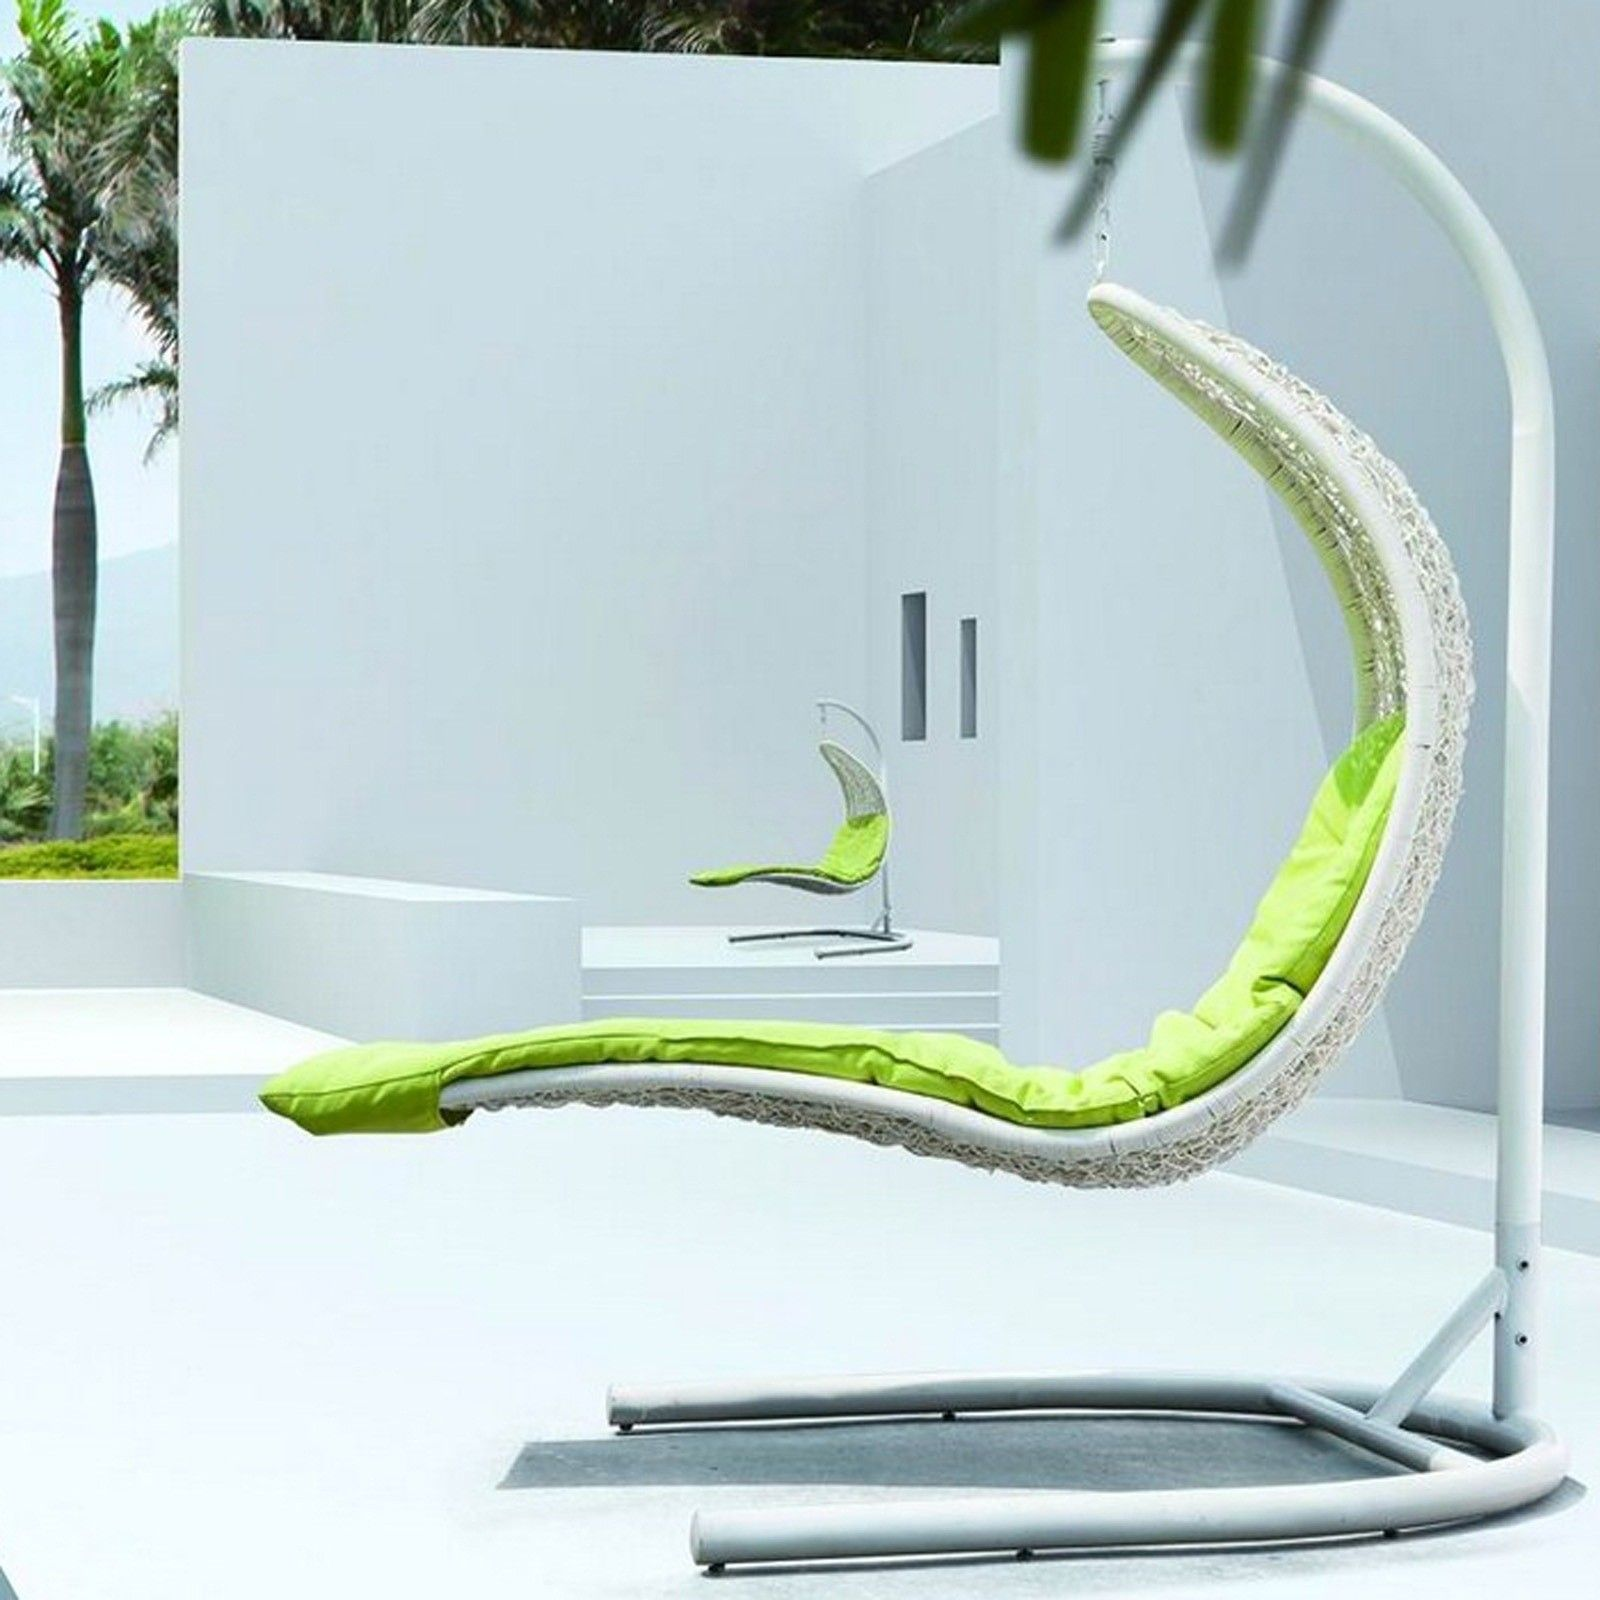 Province outdoor patio hanging chaise lounger with stand patio